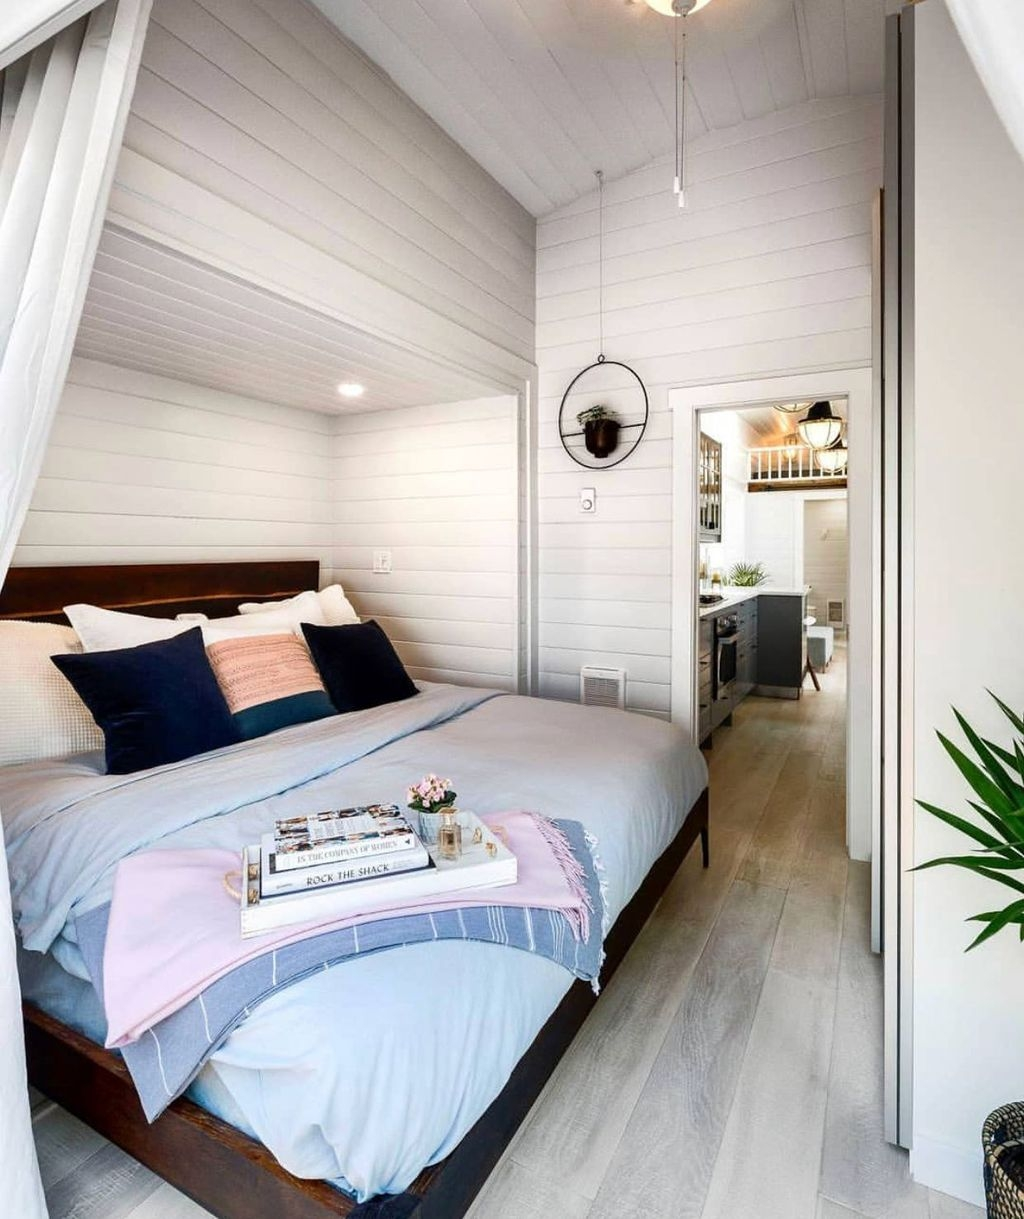 Rustic Tiny House Design Ideas With Two Beds09